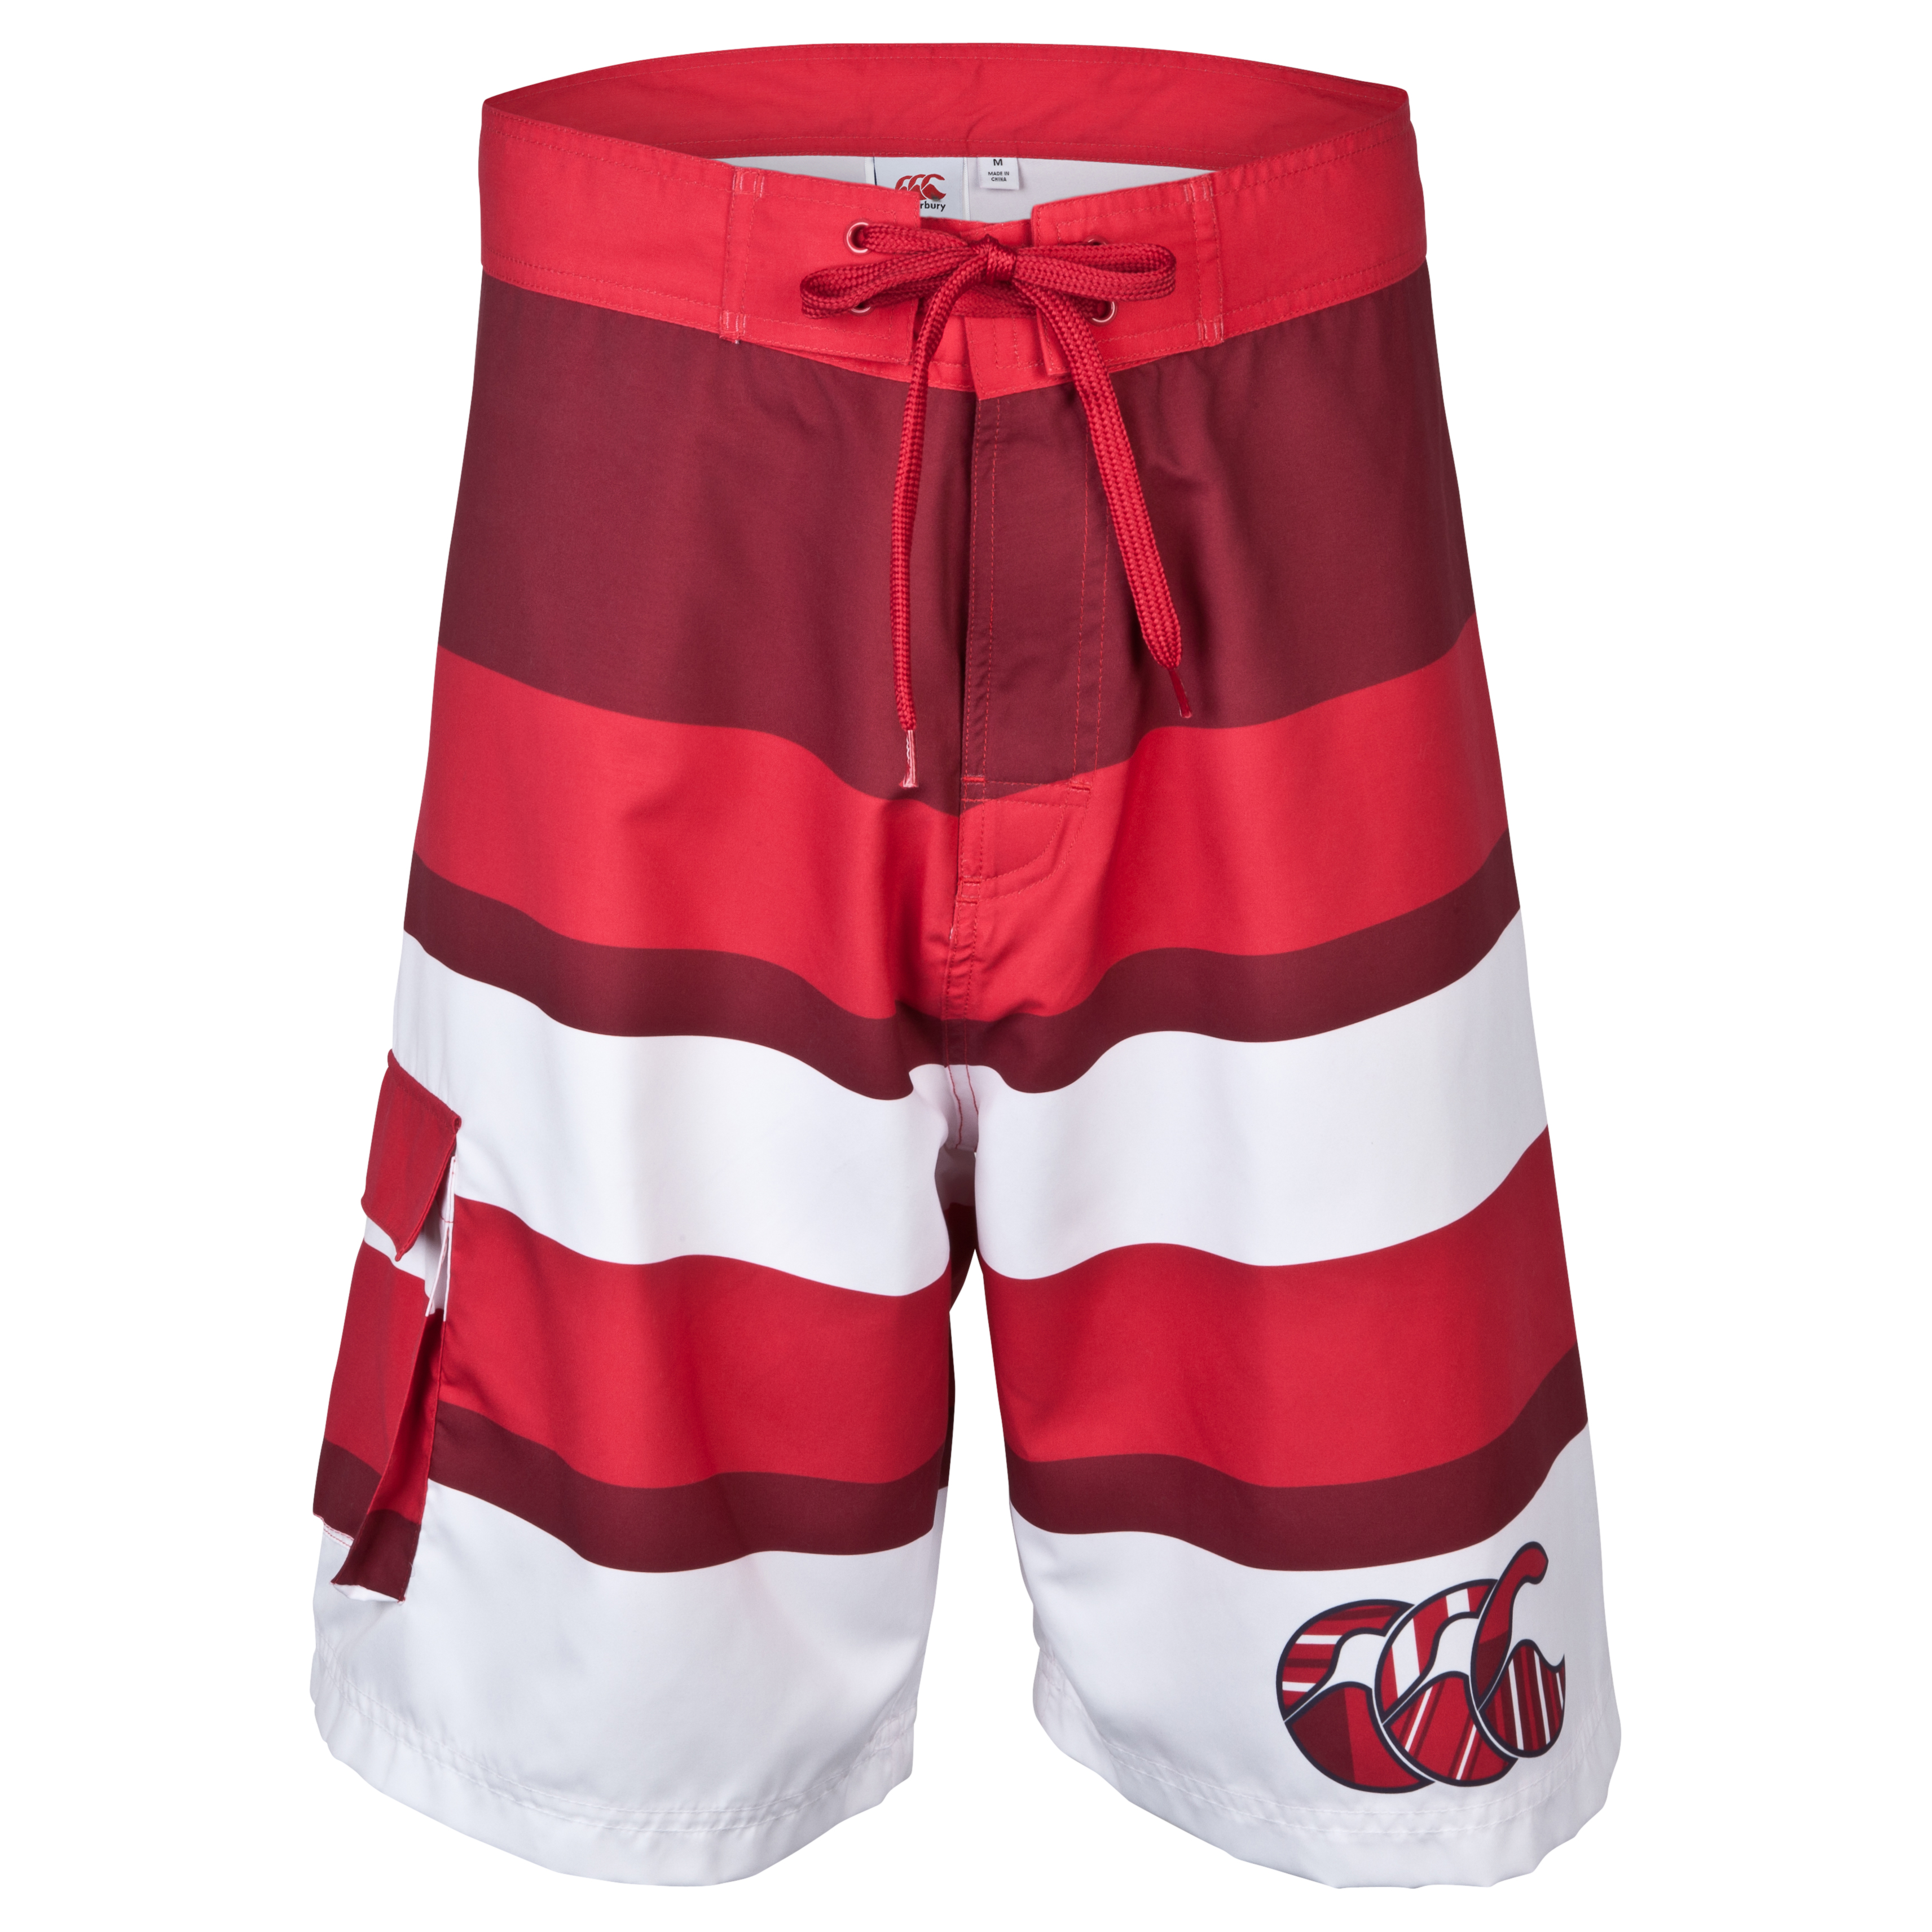 Canterbury Uglies Striped Board Short  - Formula One/Biking Red